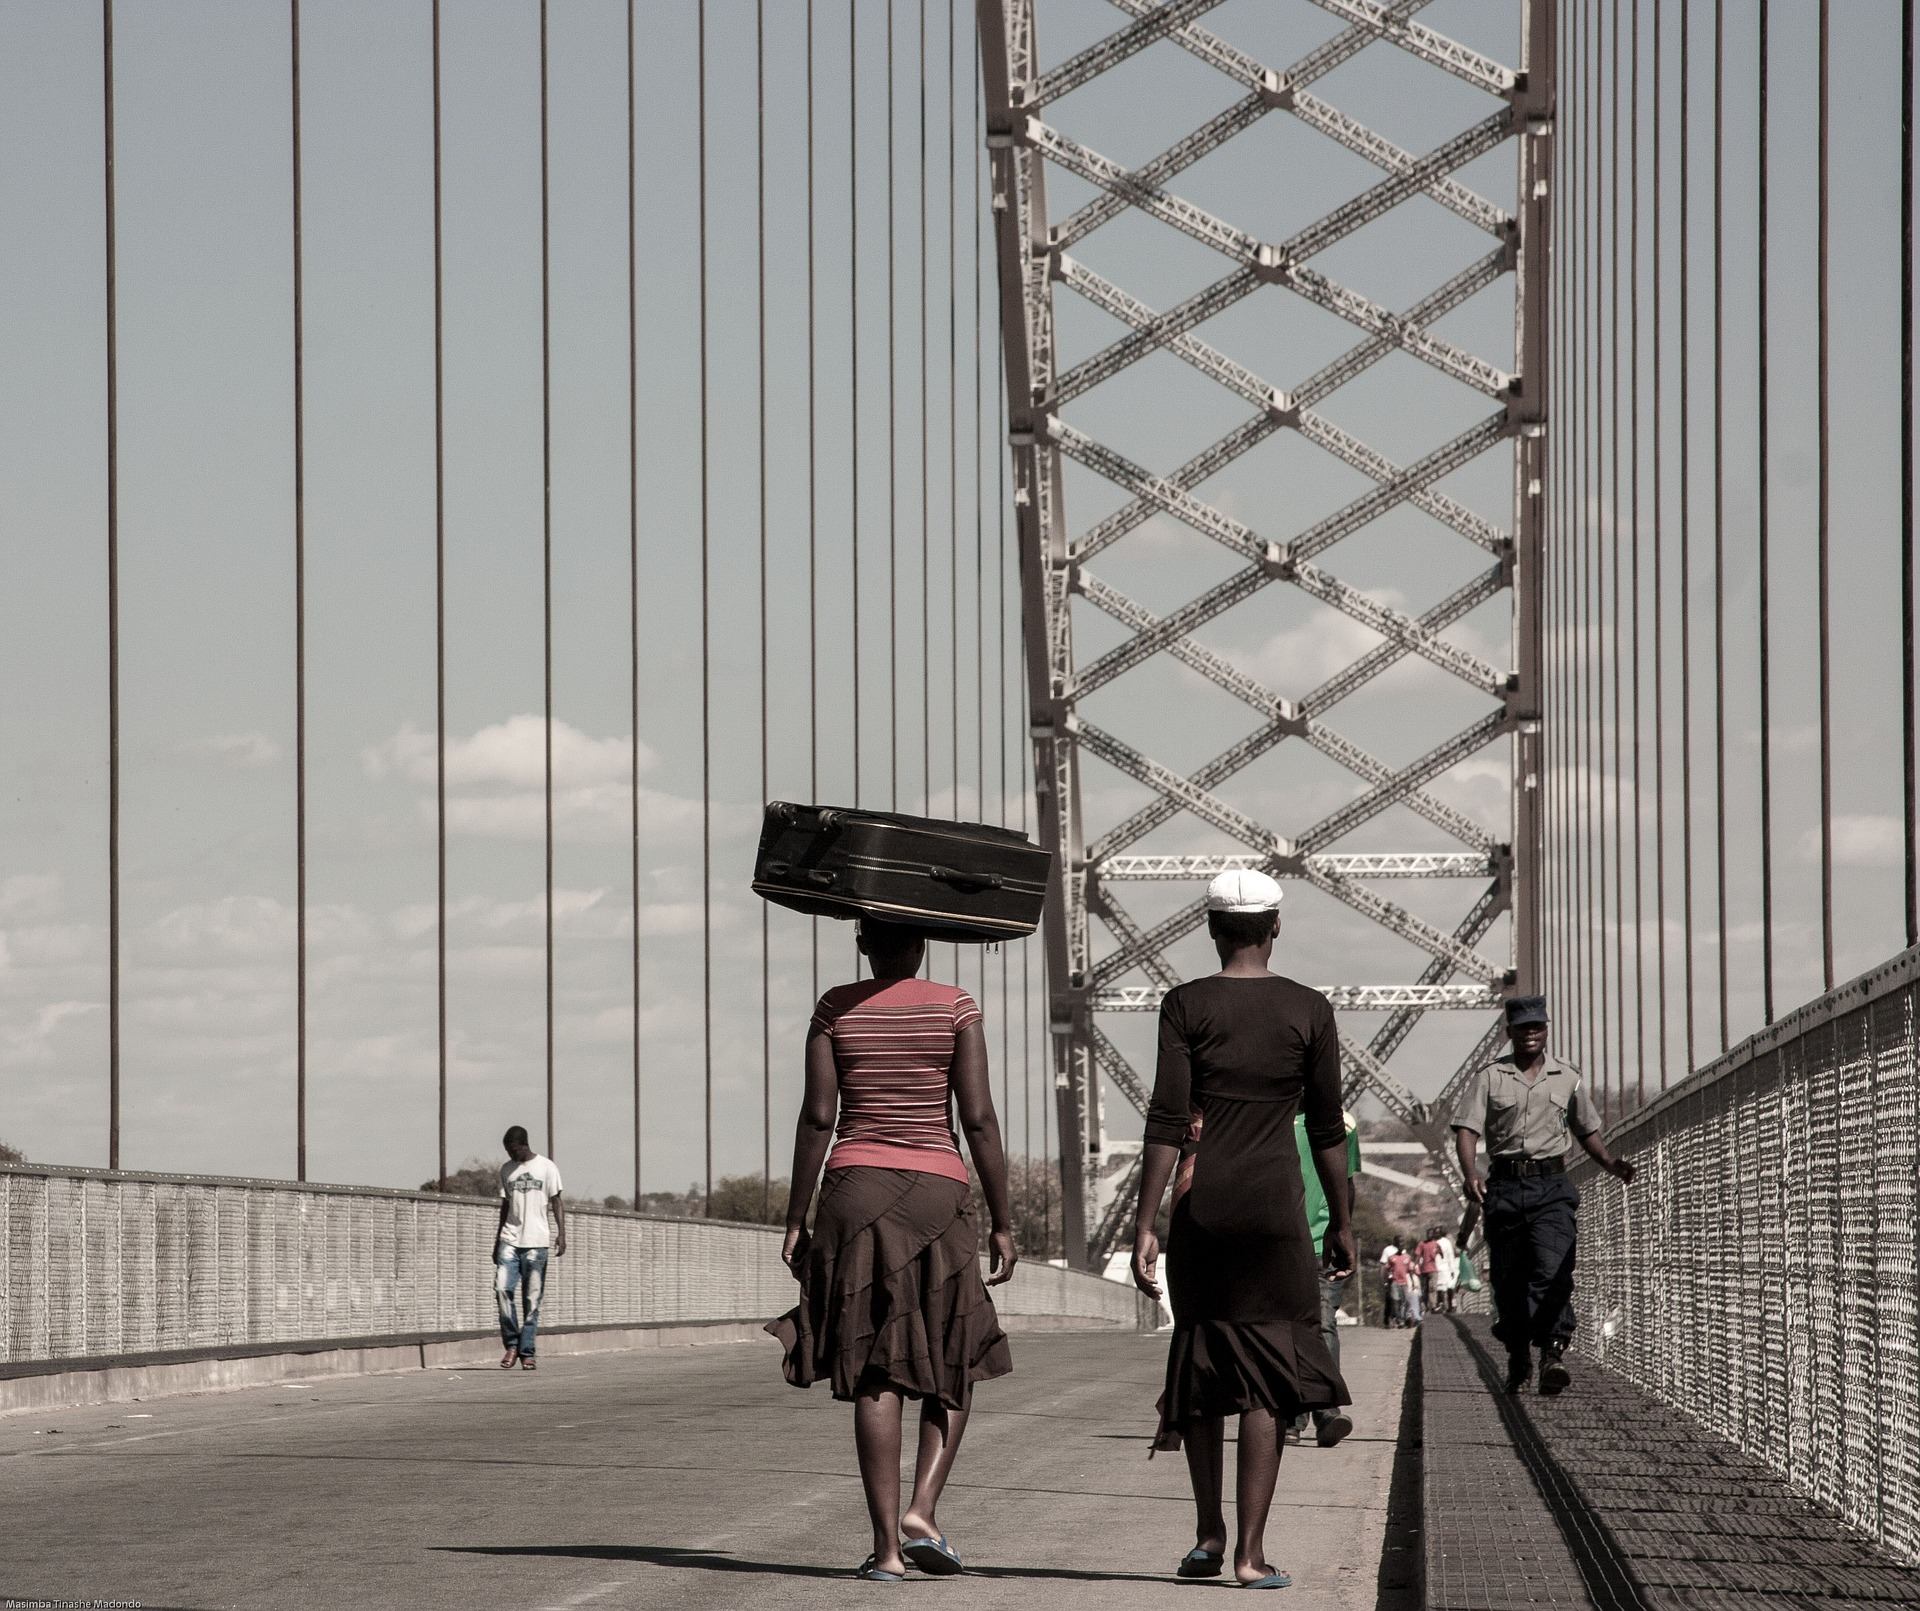 Citizens crossing a bridge. Mozambique's new Maputo-Catembe bridge is an example of an infrastructural investment that can facilitate increased mobility, better transport and economic benefits. Photo credit: 1388843